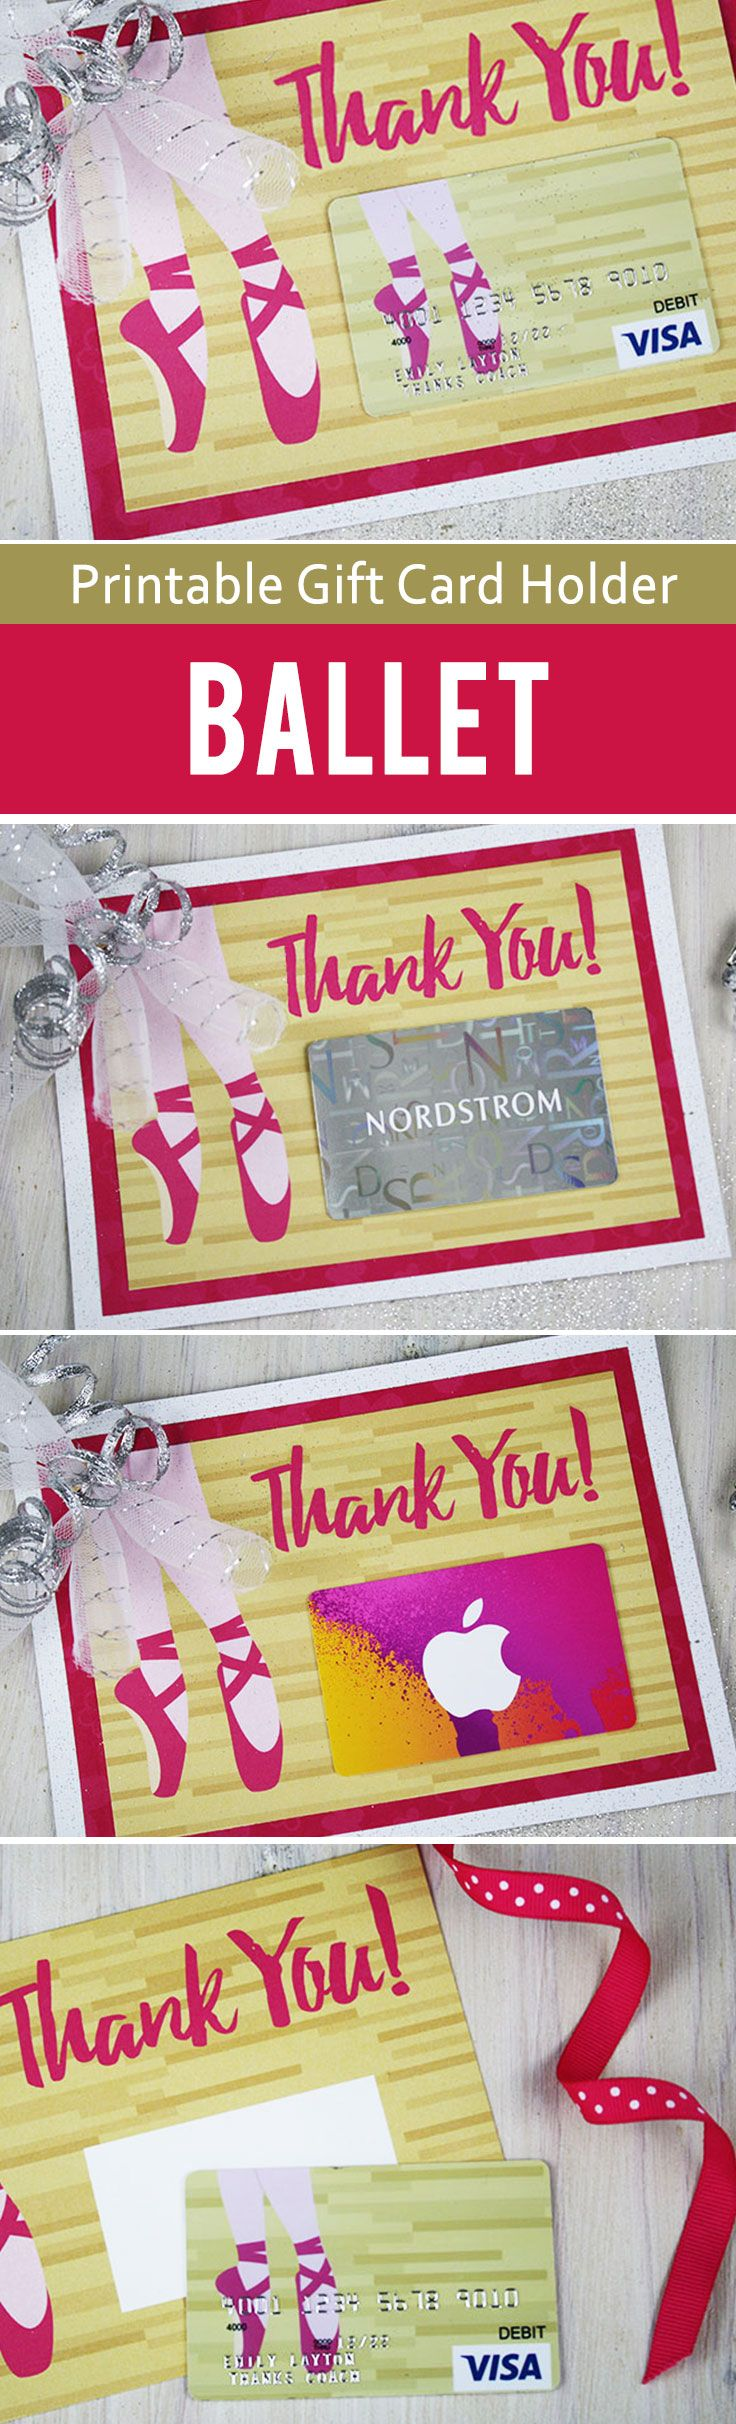 Free printable gift card holder for ballet teacher or coach use this cute idea to